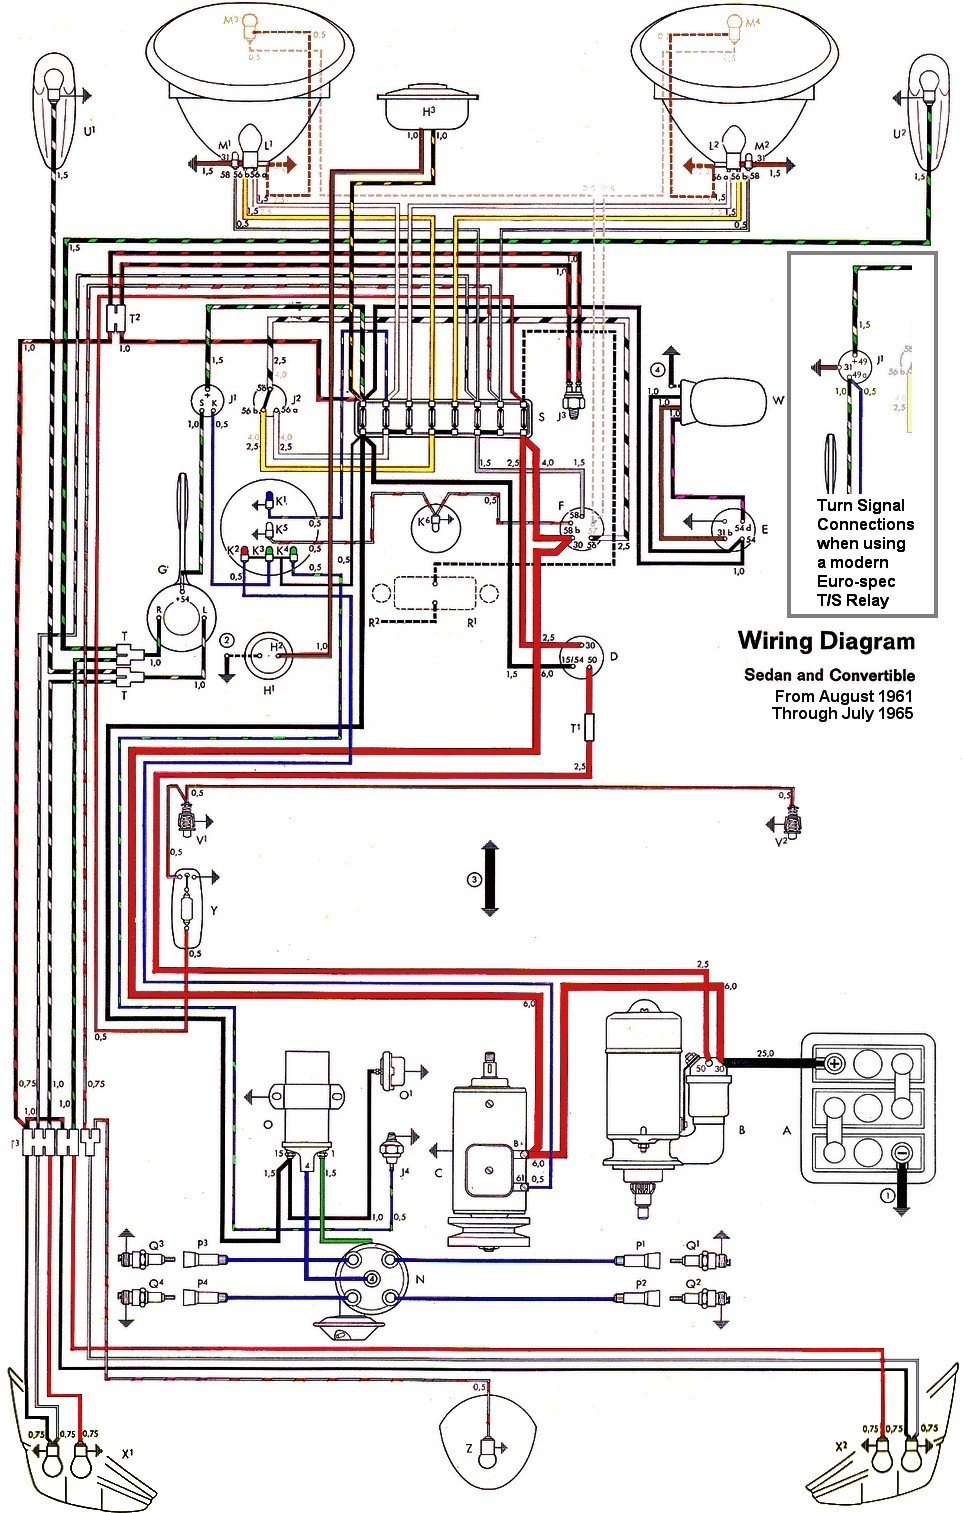 Alternator wiring diagram vw bus free